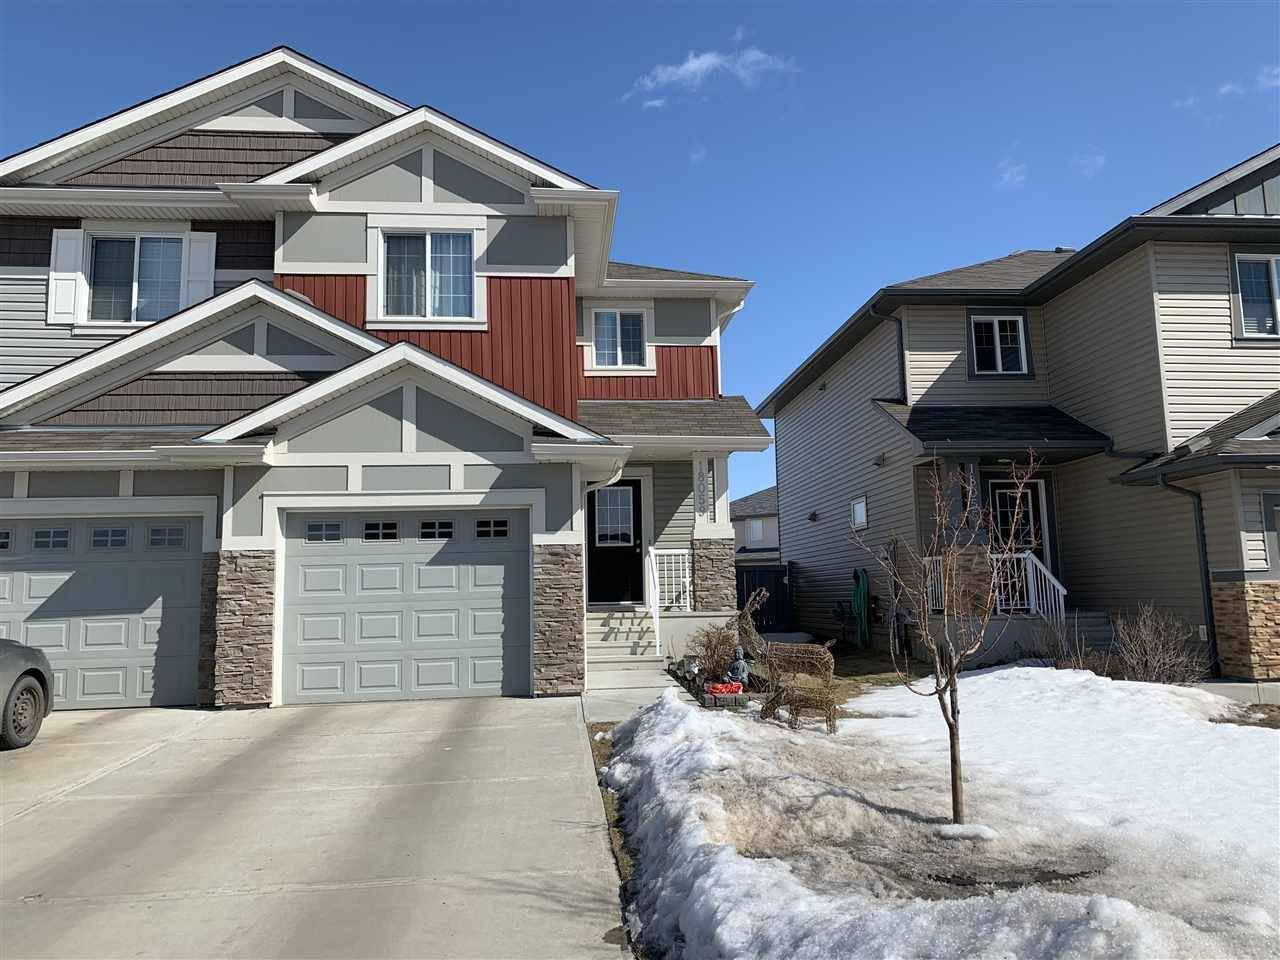 Townhouse for sale at 18059 85 St Nw Edmonton Alberta - MLS: E4193858